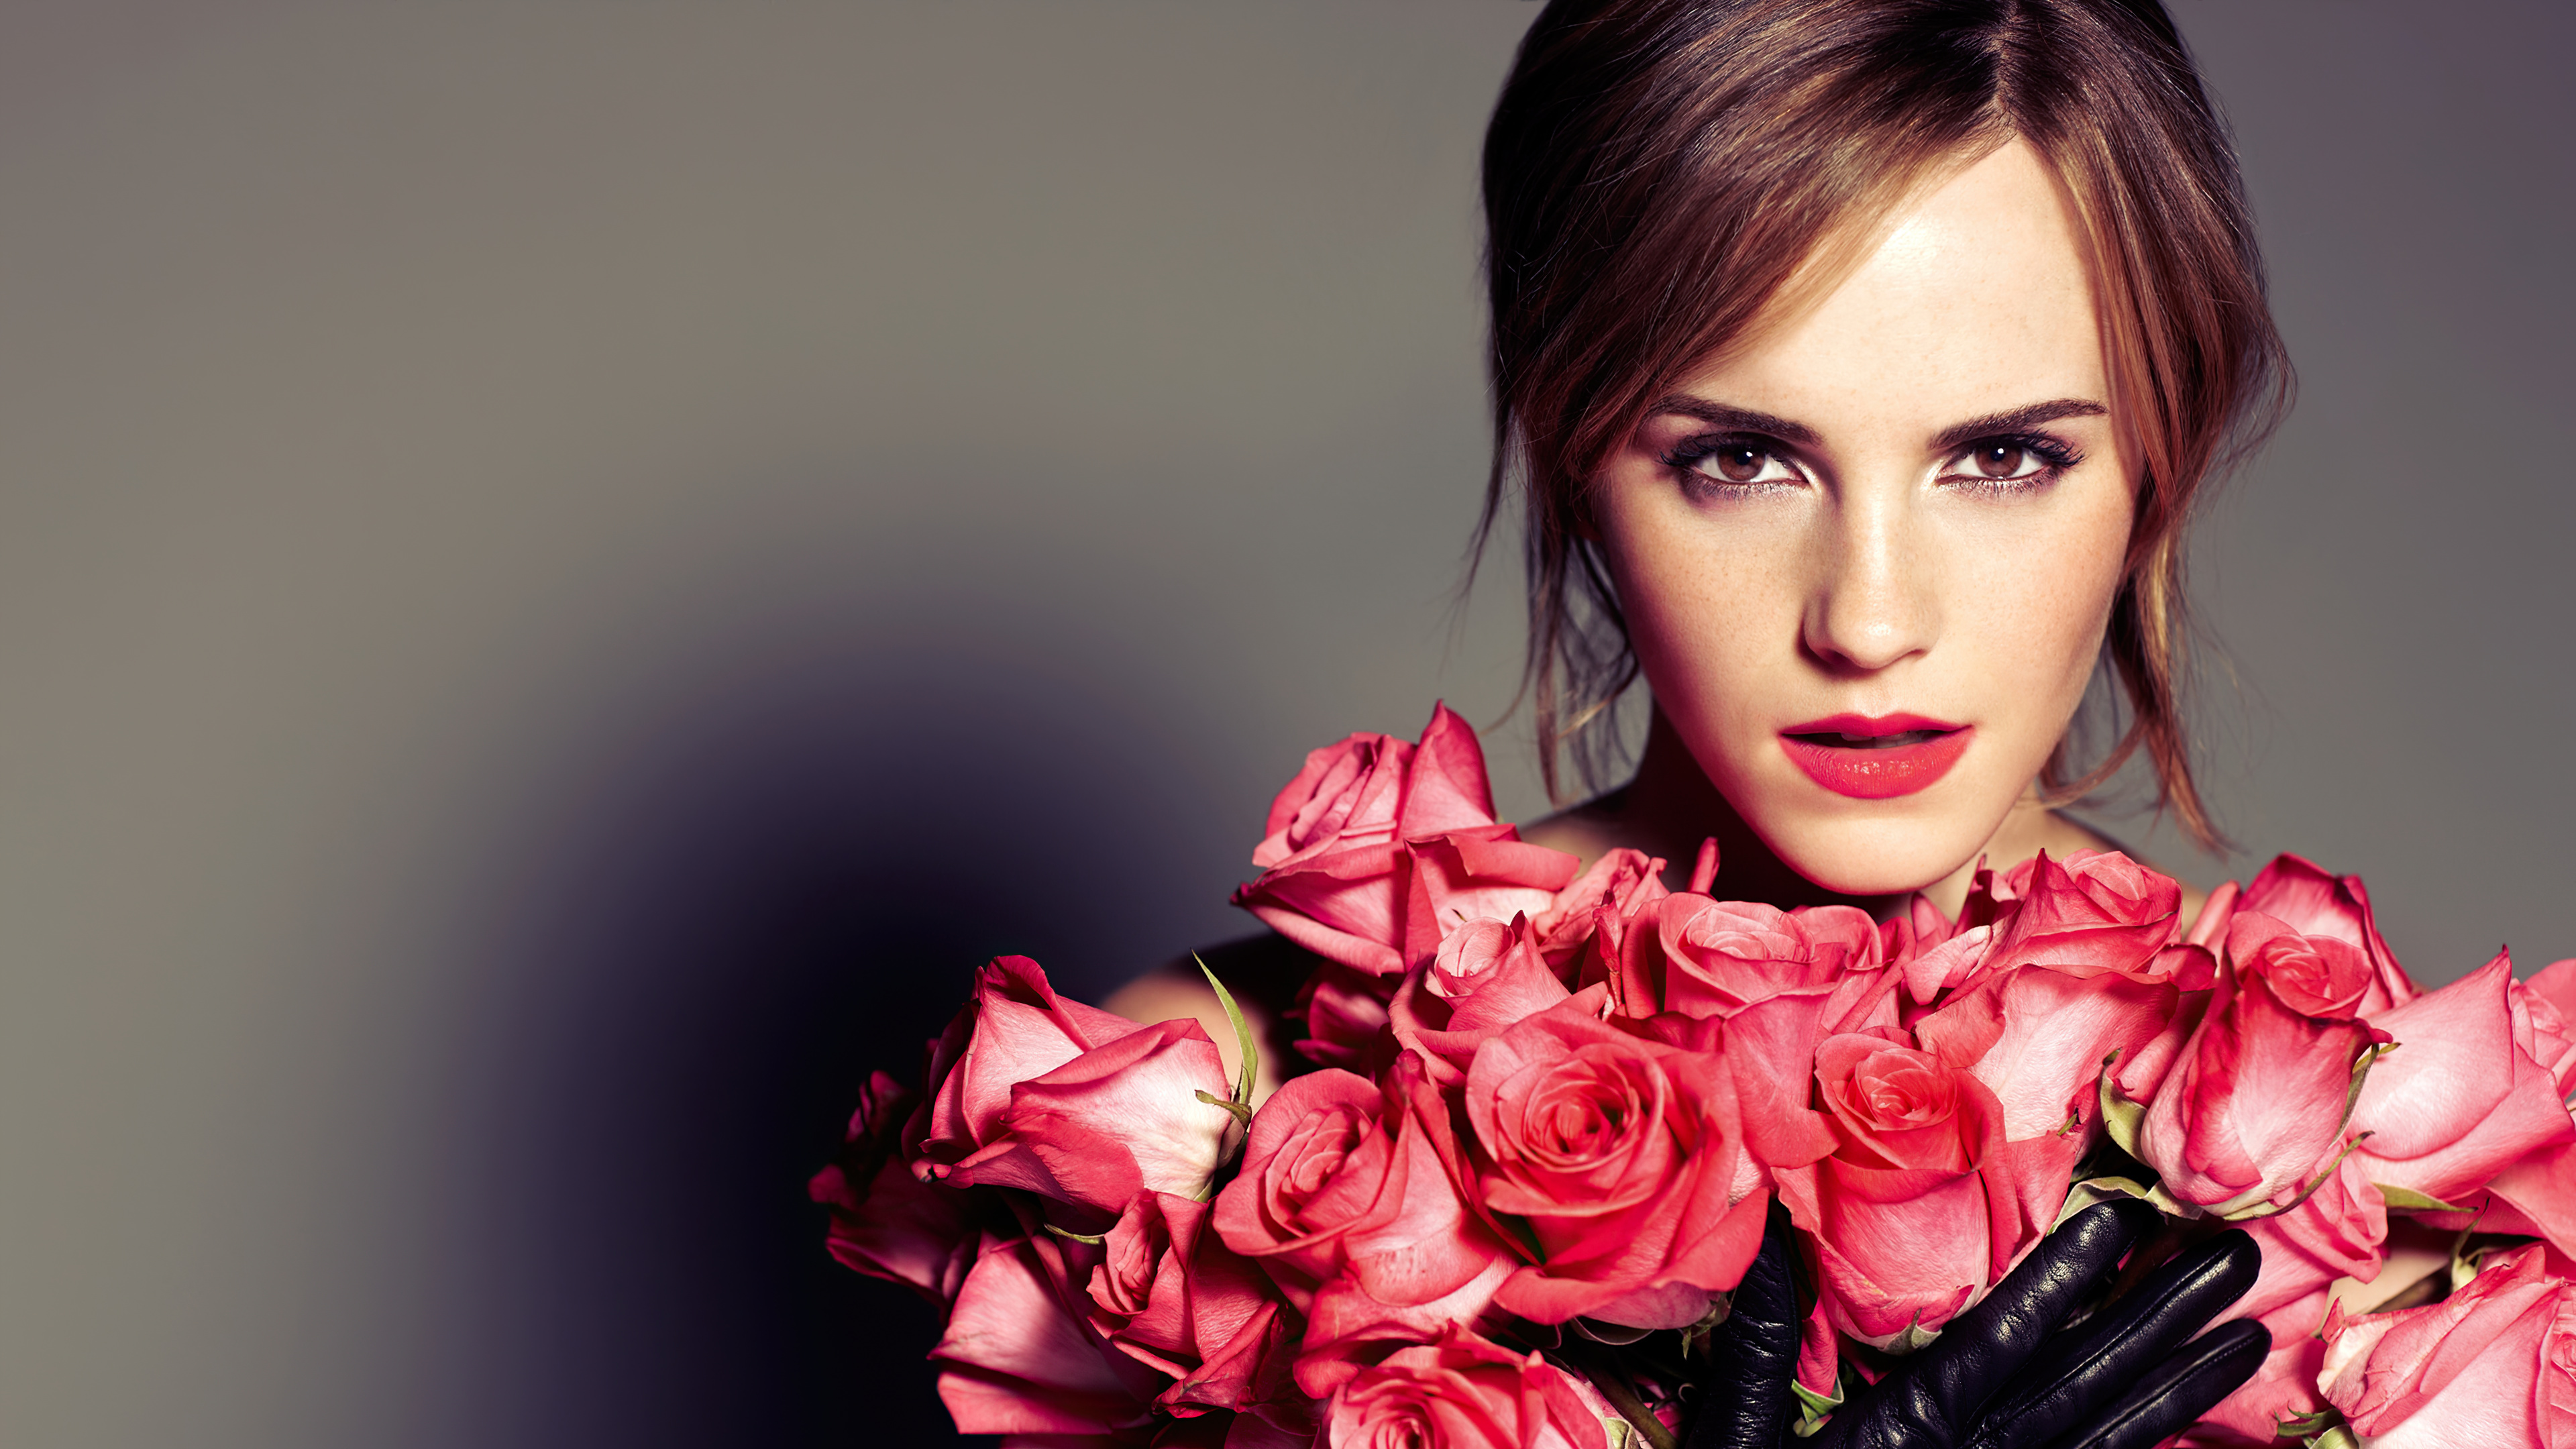 Wallpaper Emma Watson with  roses